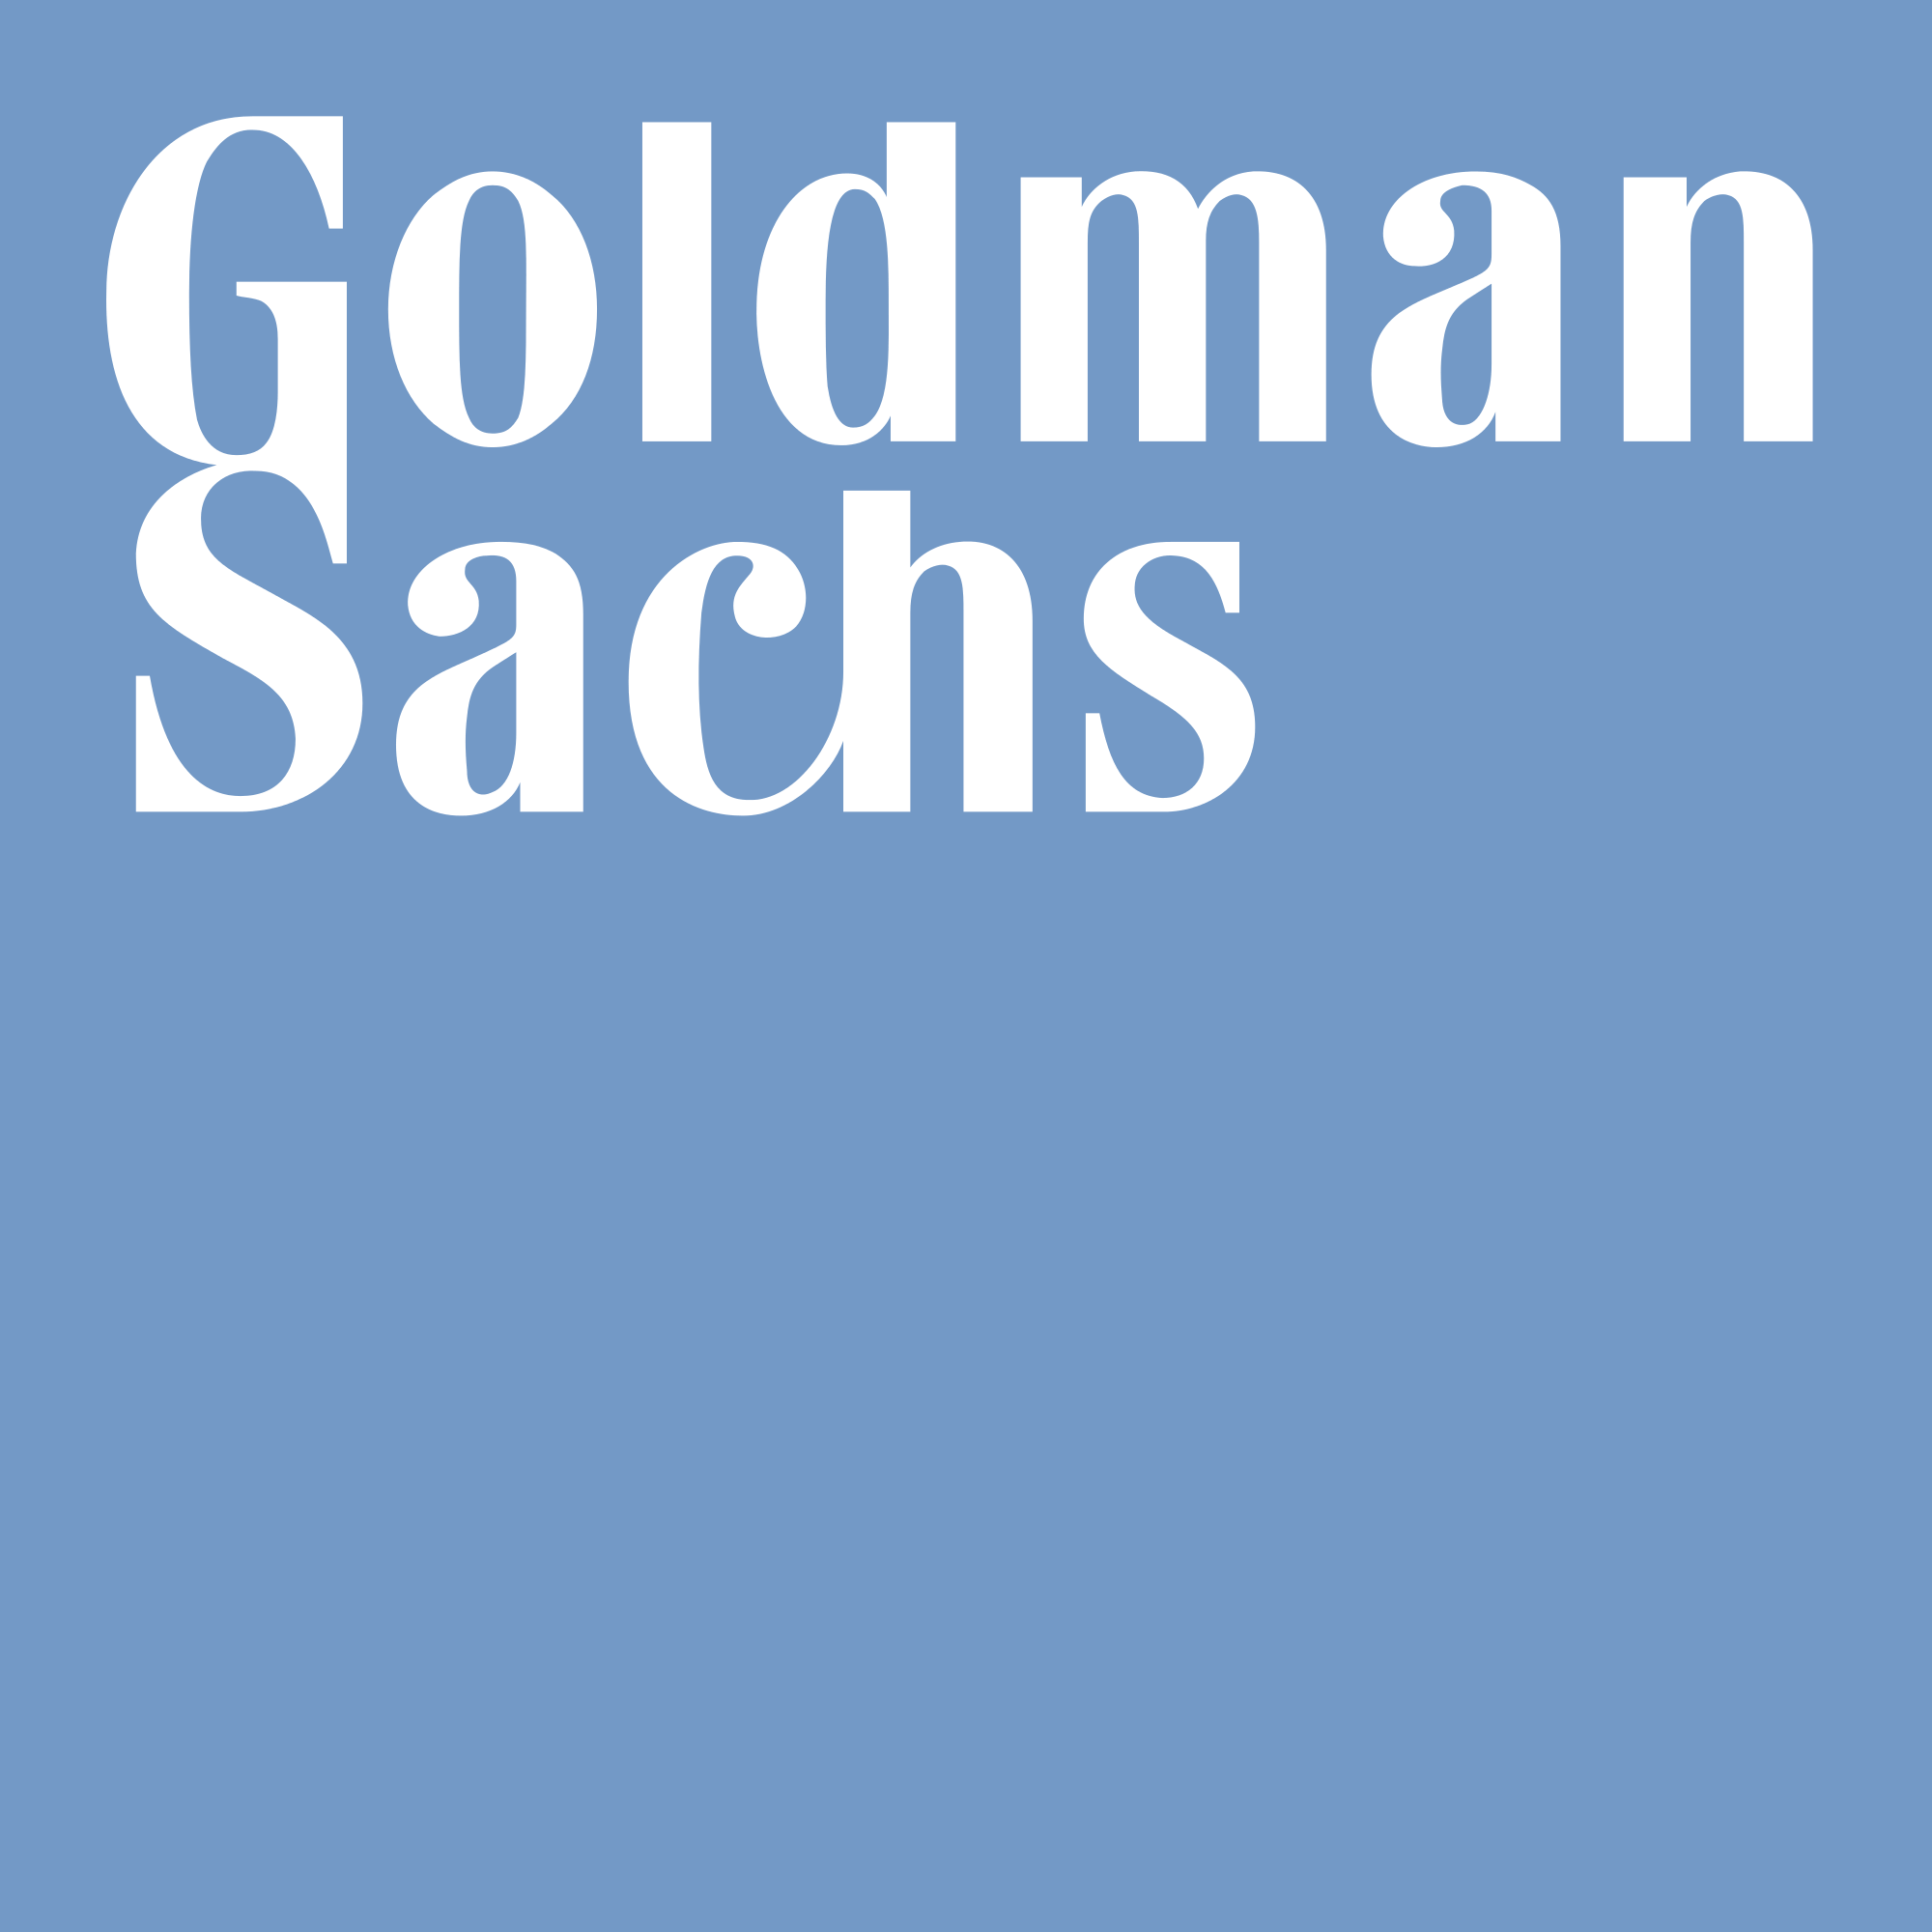 Goldman Sachs Internship Openings for Summer